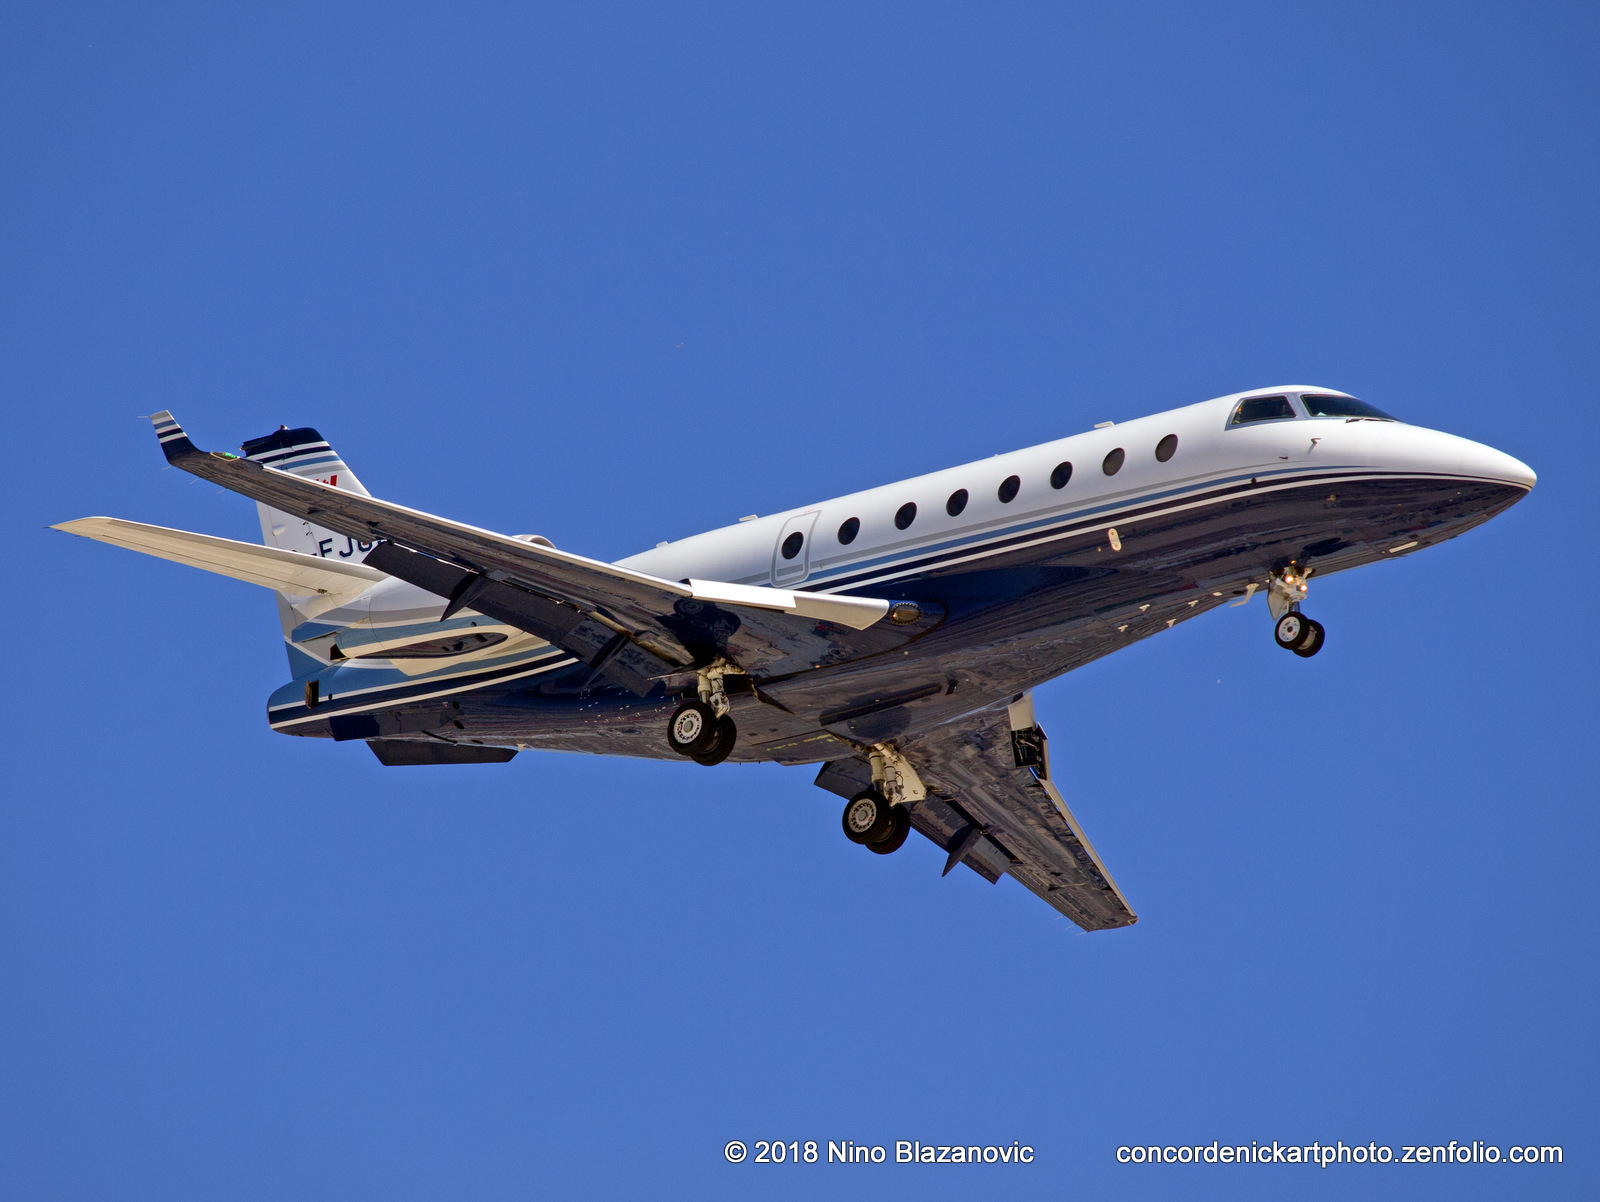 A Gulfstream G200 business jet swooping in for a landing at CYWG / Winnipeg.